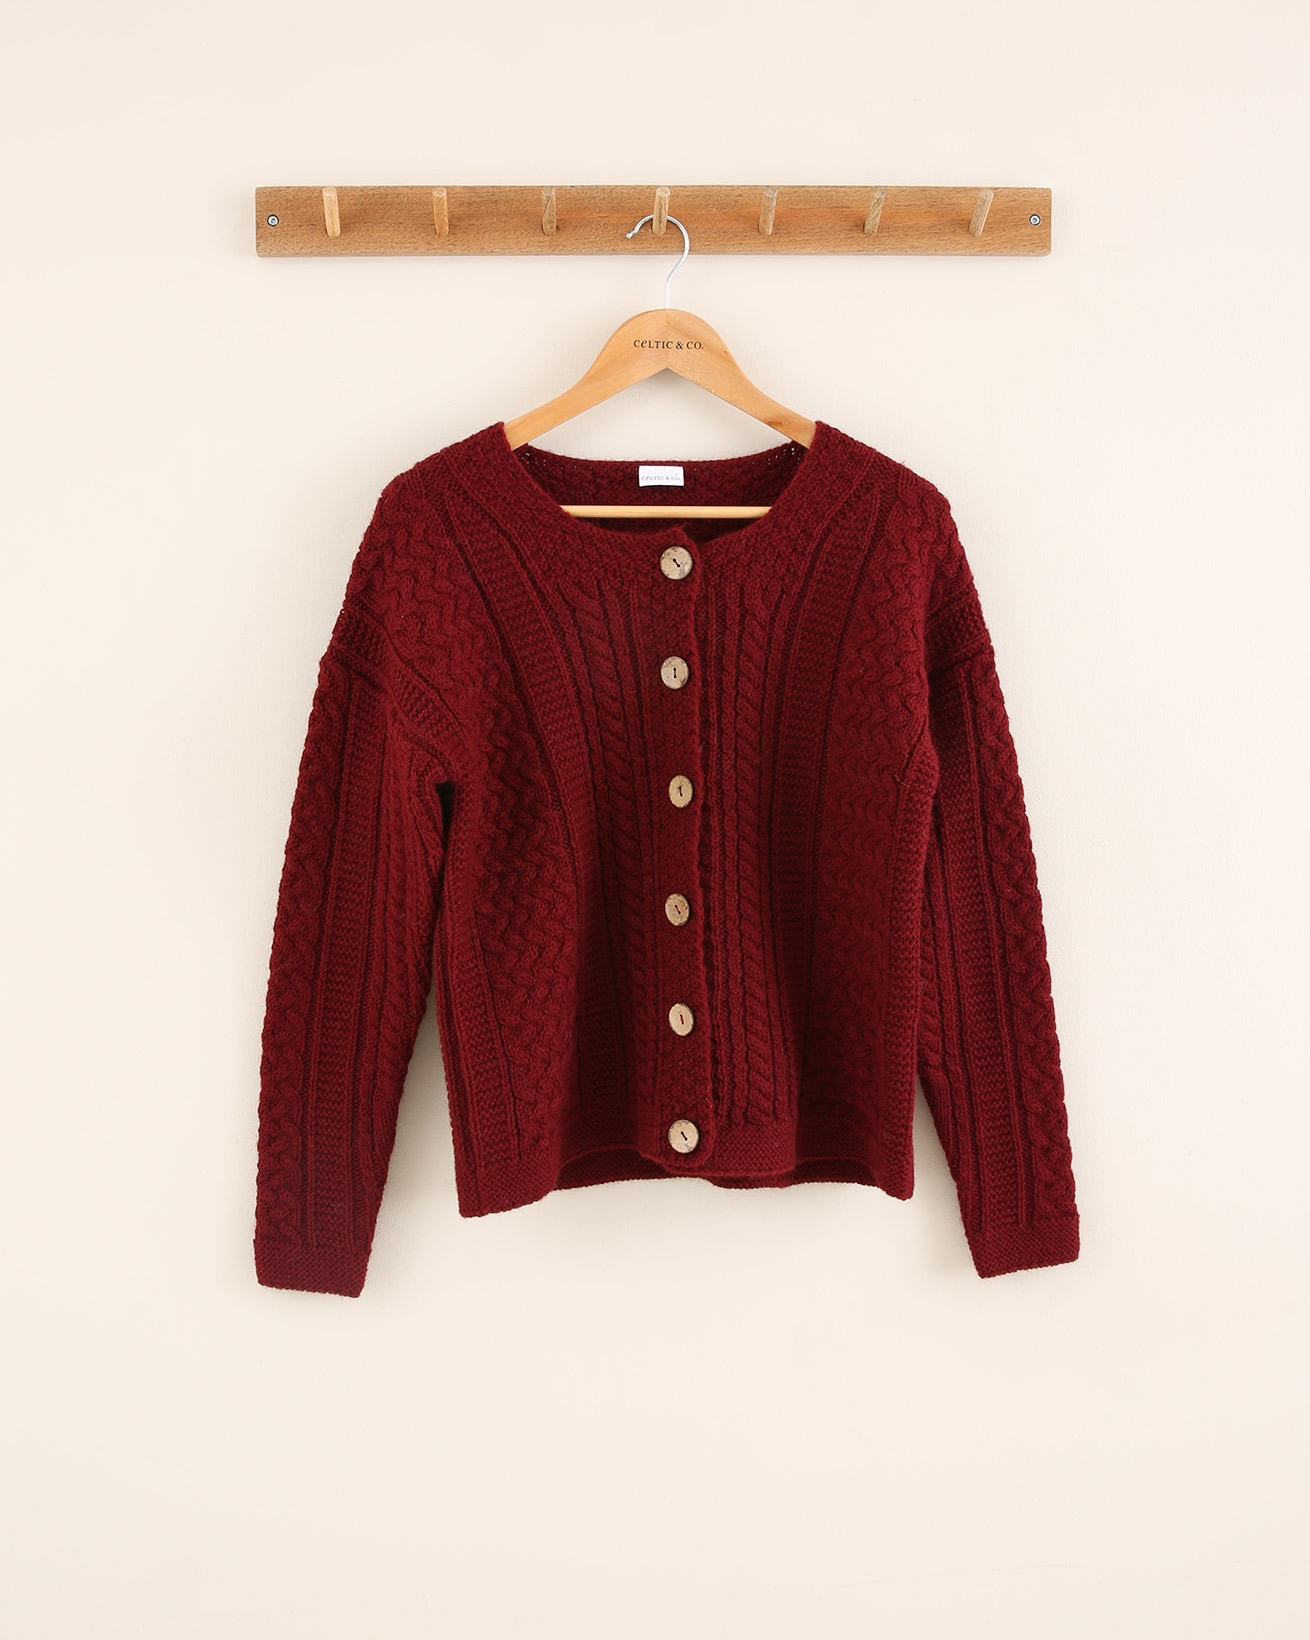 Cable Cardigan - Size Small - Claret - 1768